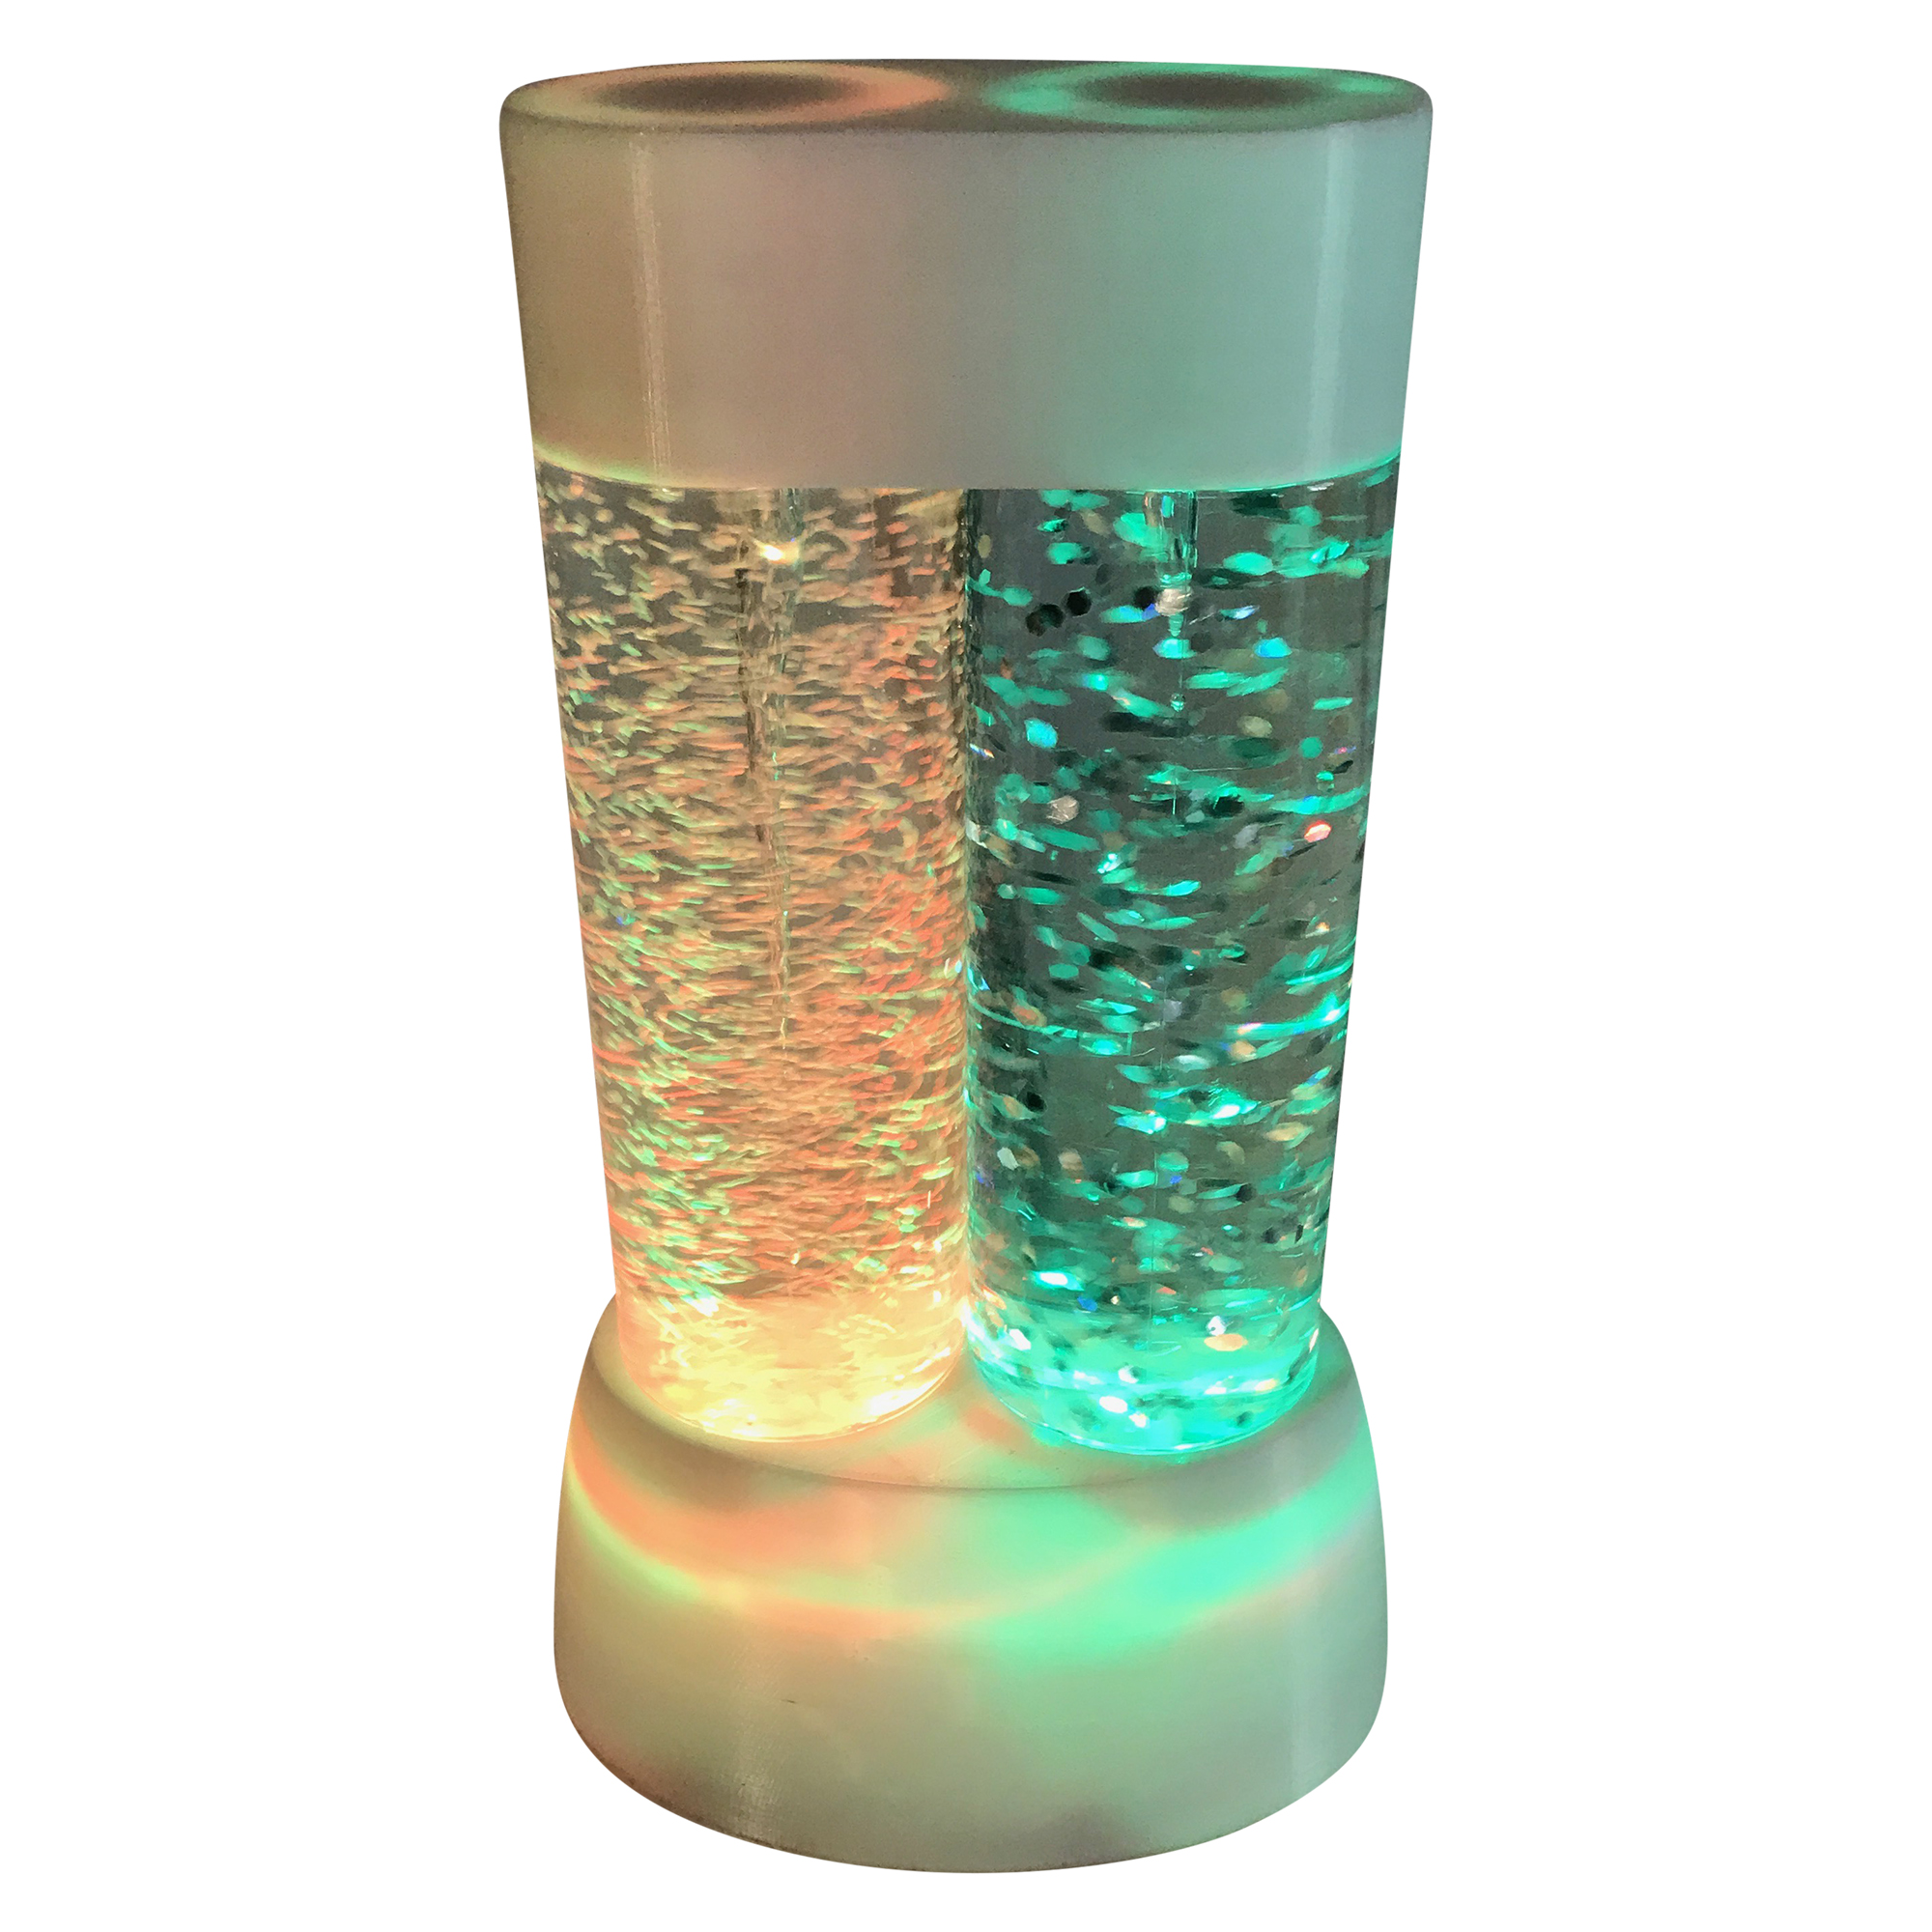 Electrical Twin Tornadoes Lamp; Product Size: 9.84 x5.78x3.81 by Creative Motion Industries, Inc